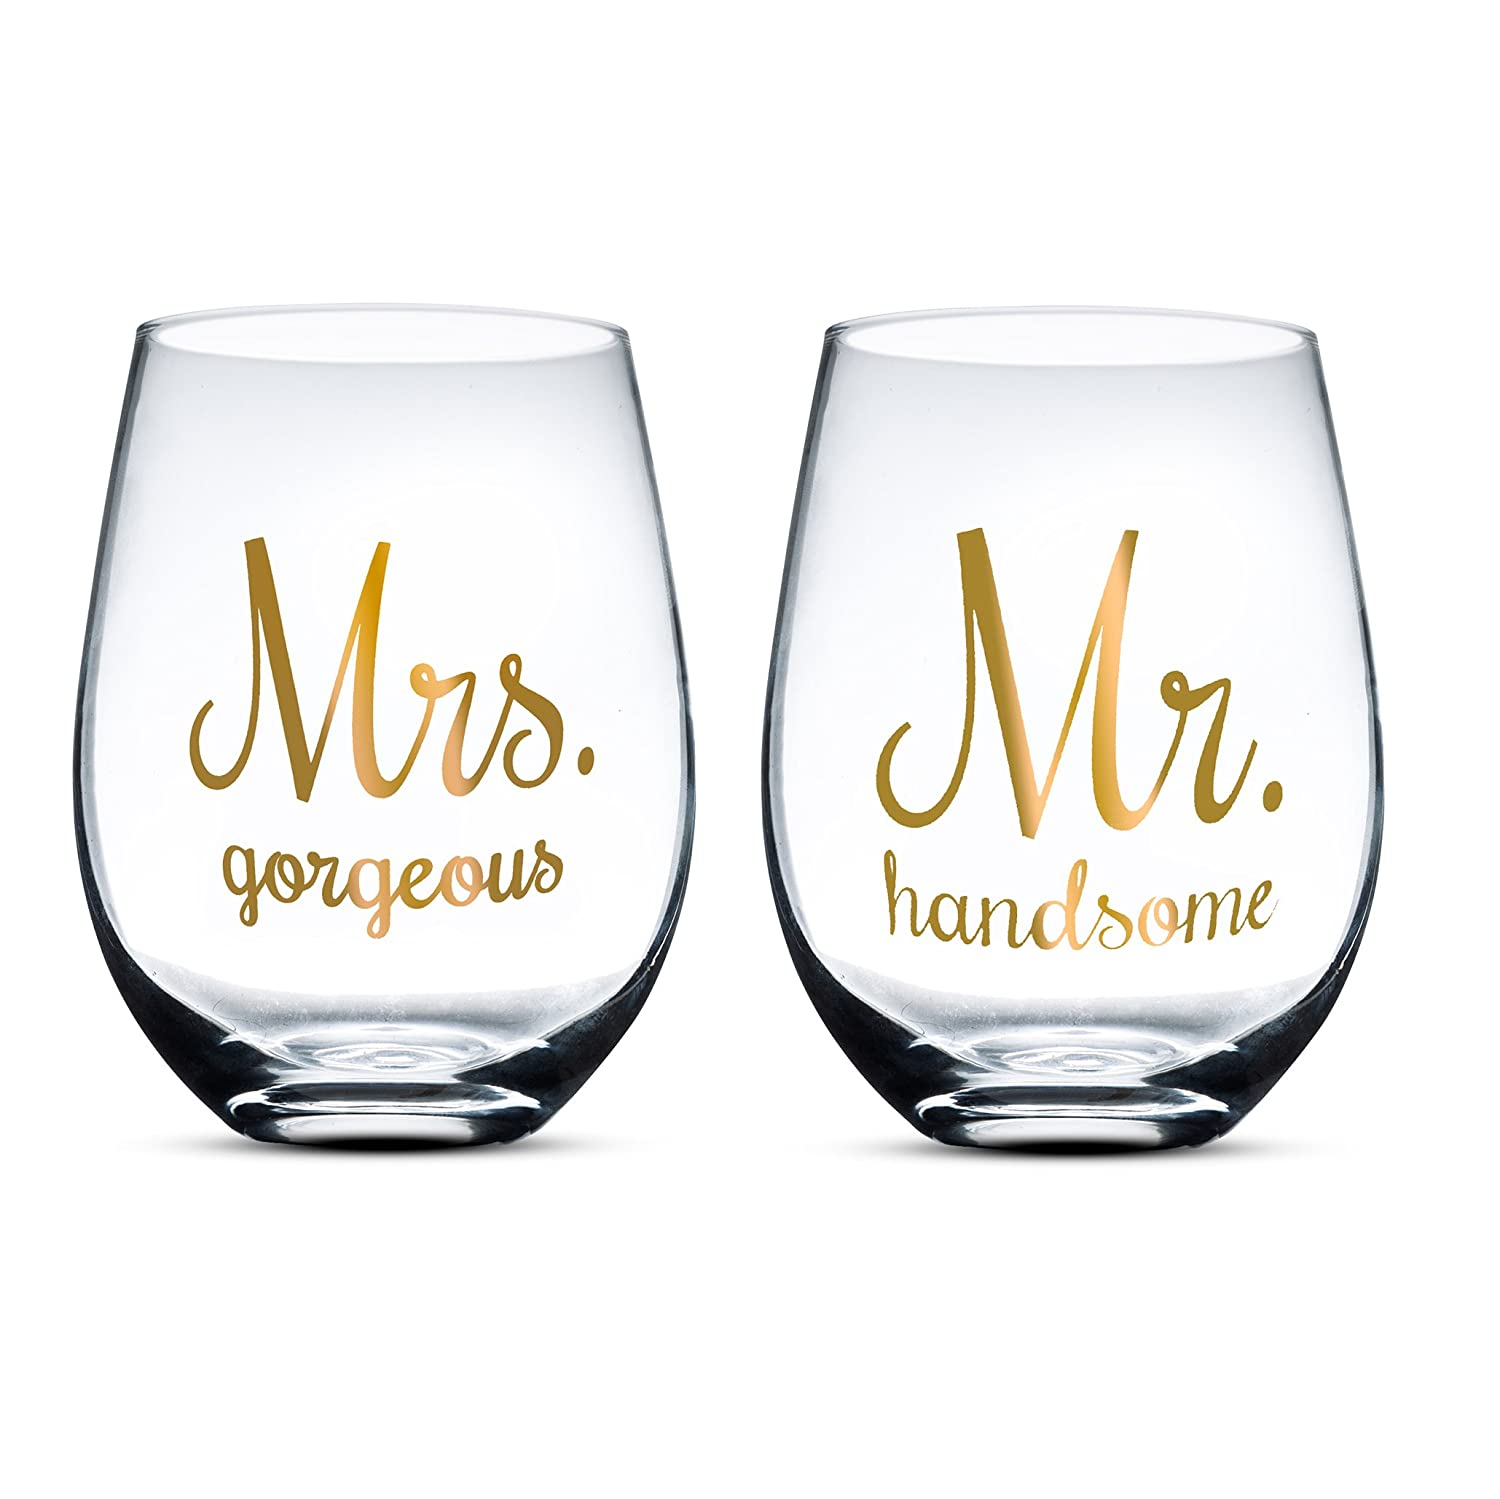 Gifffted Mr Handsome And Mrs Gorgeous Stemless Wine Glasses For The